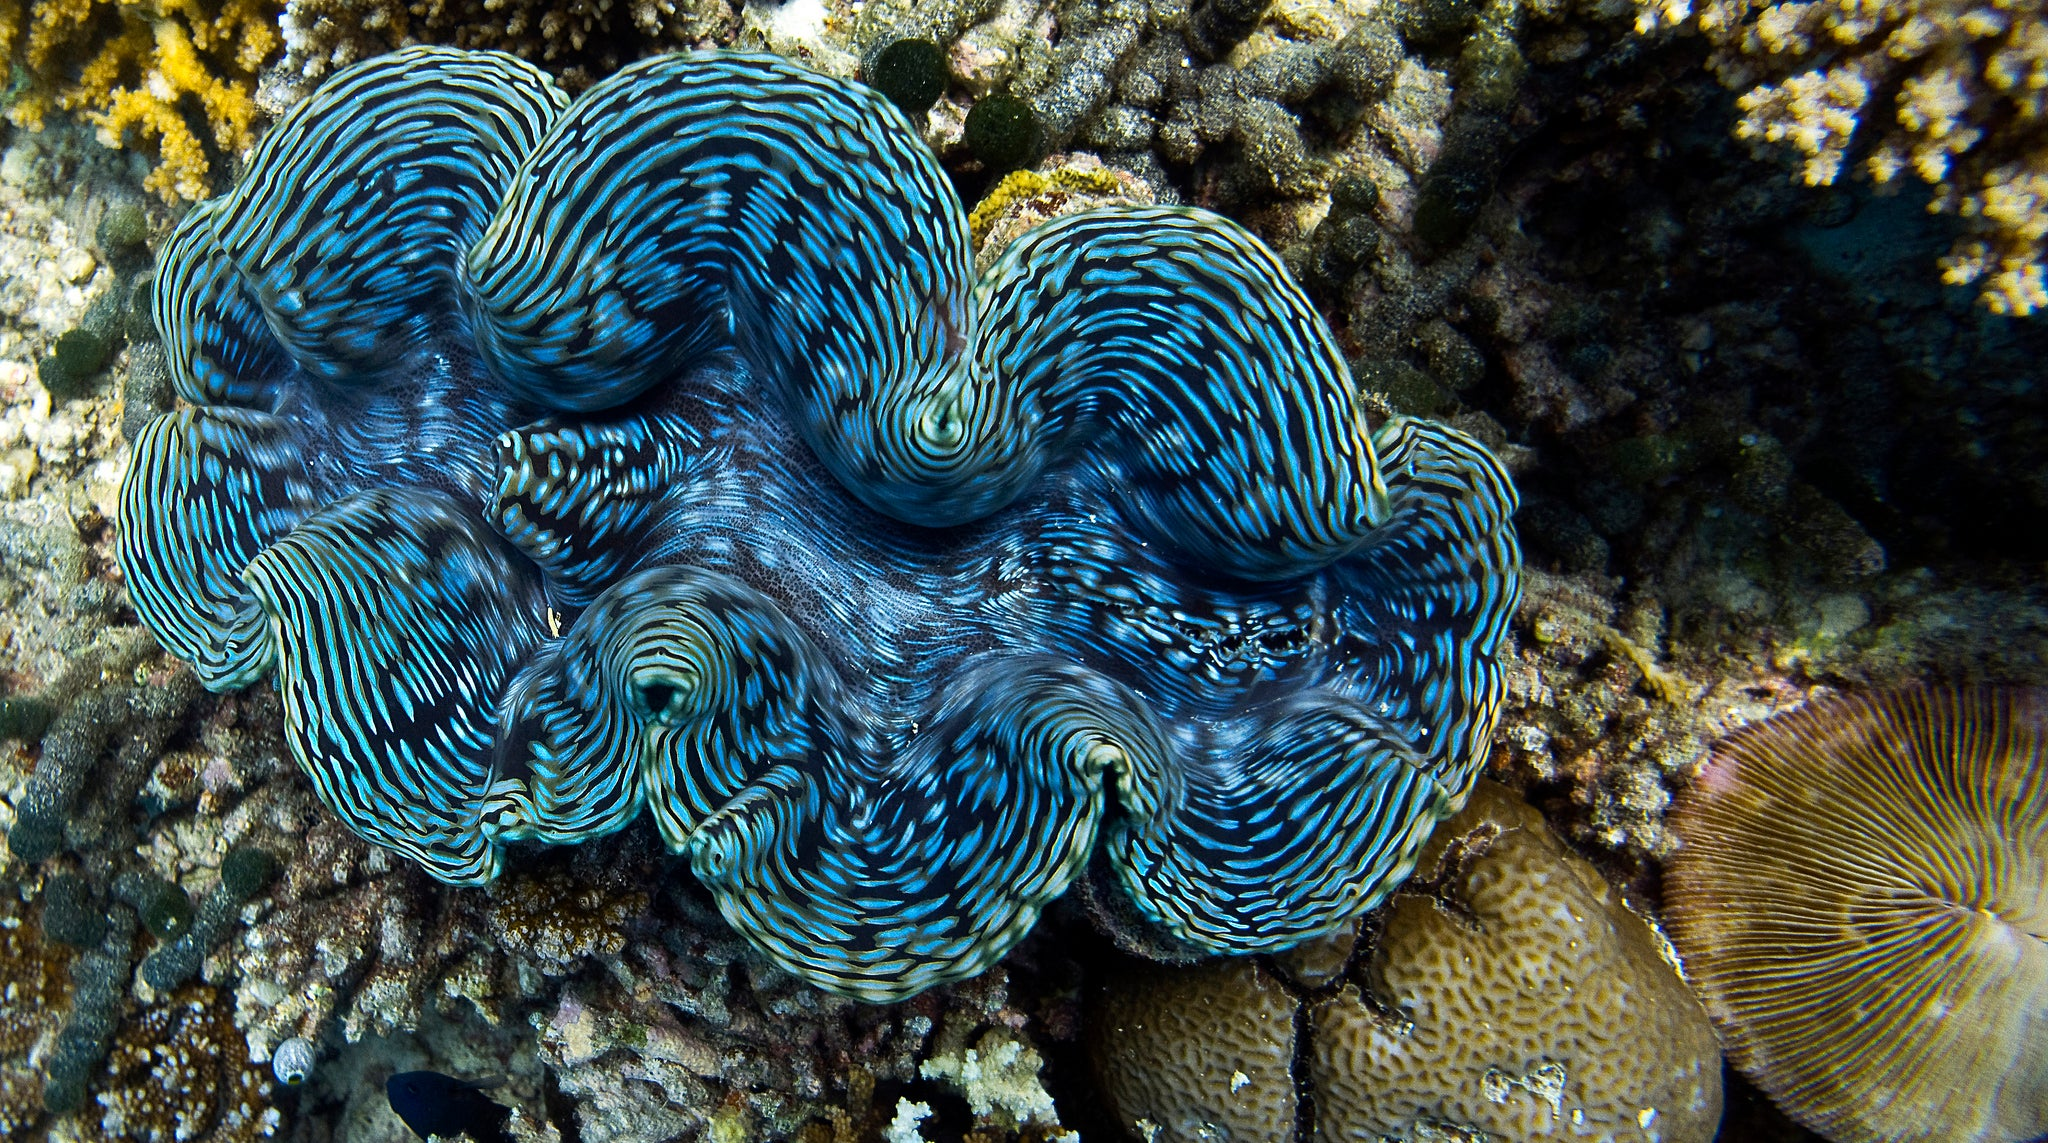 Giant Clams Light Up Like Plasma Screens, Only Better